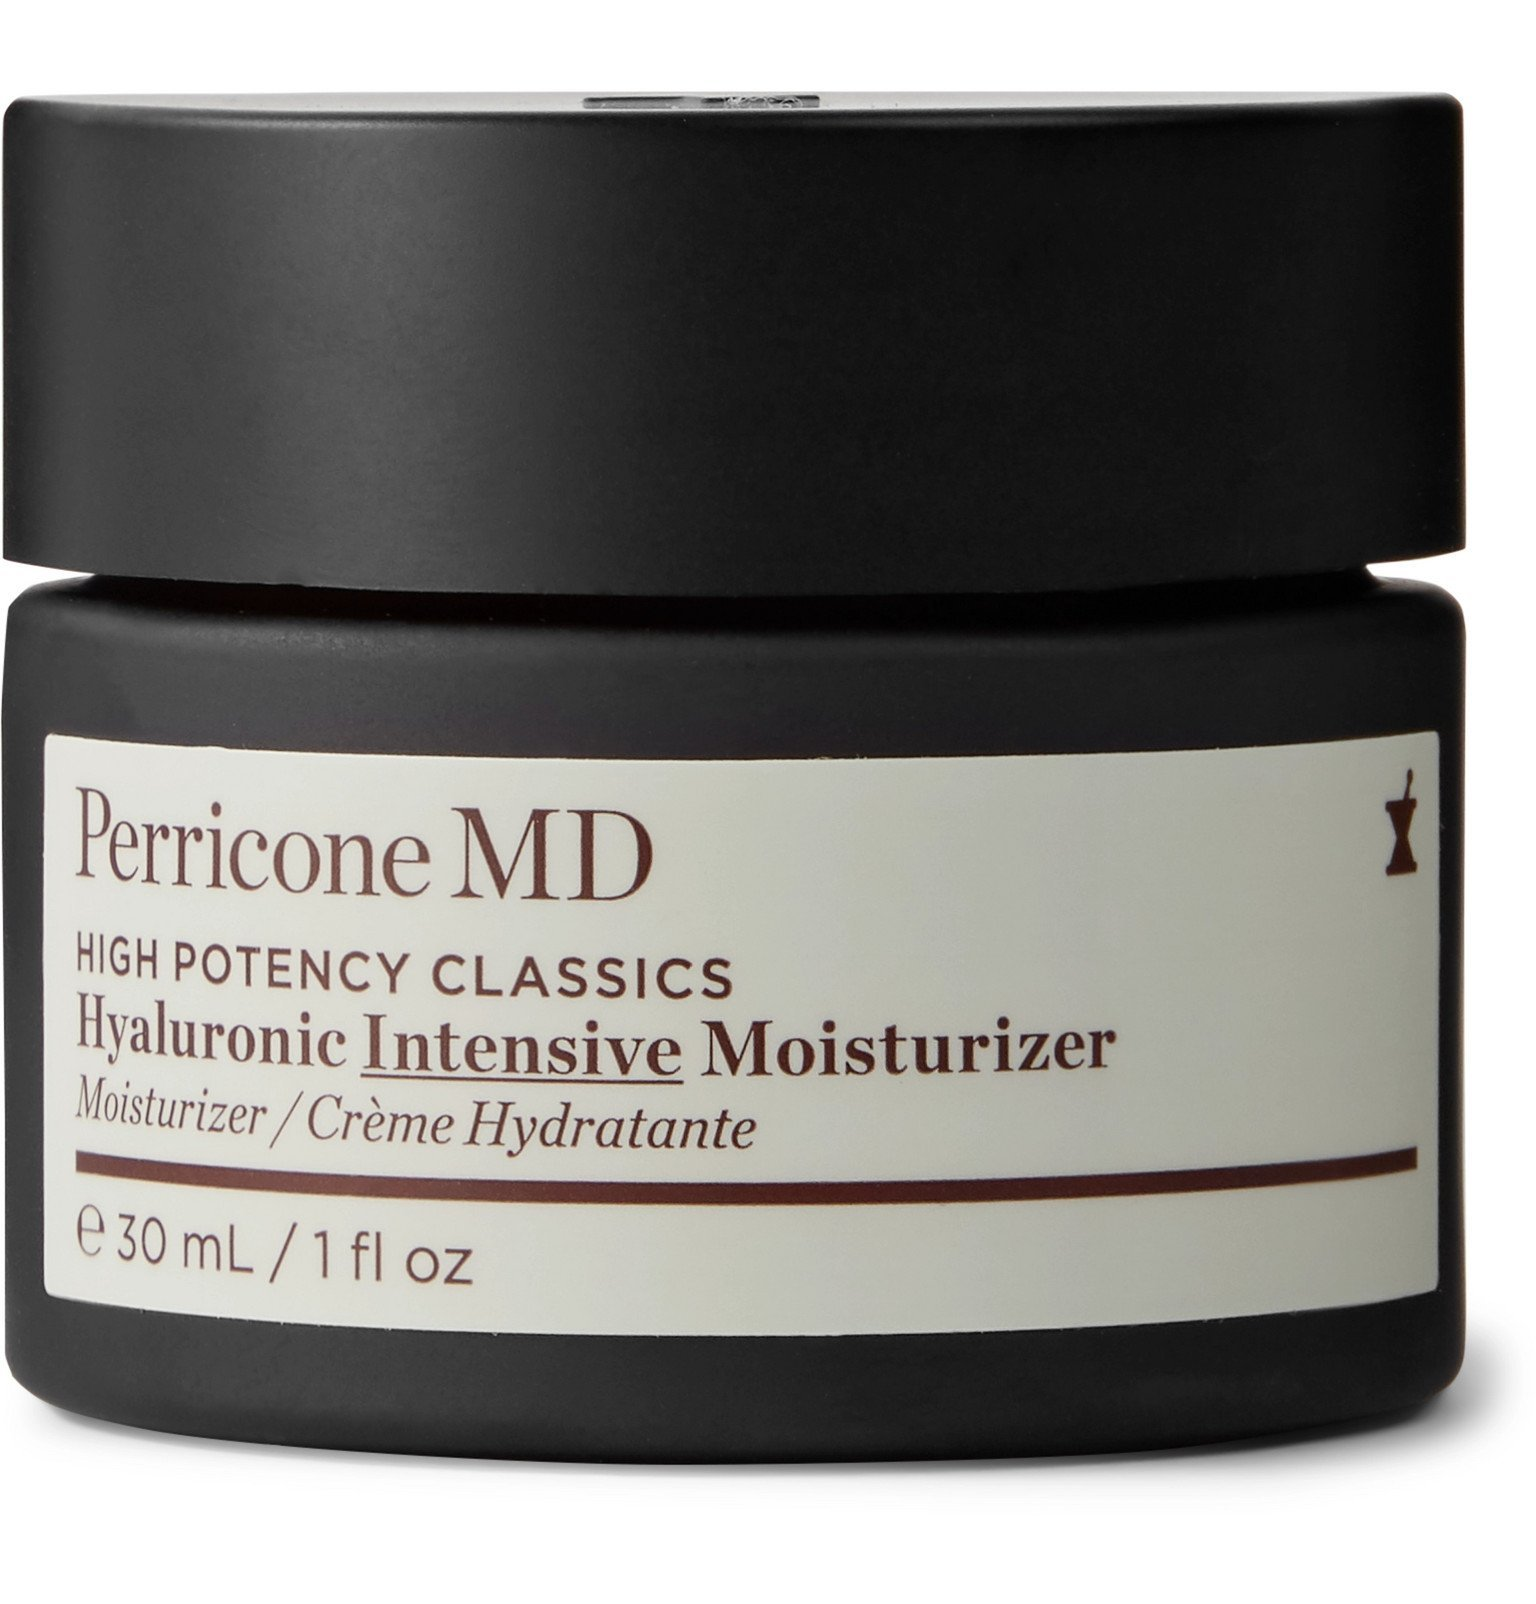 Photo: Perricone MD - High Potency Classics Hyaluronic Intensive Moisturizer, 30ml - Colorless